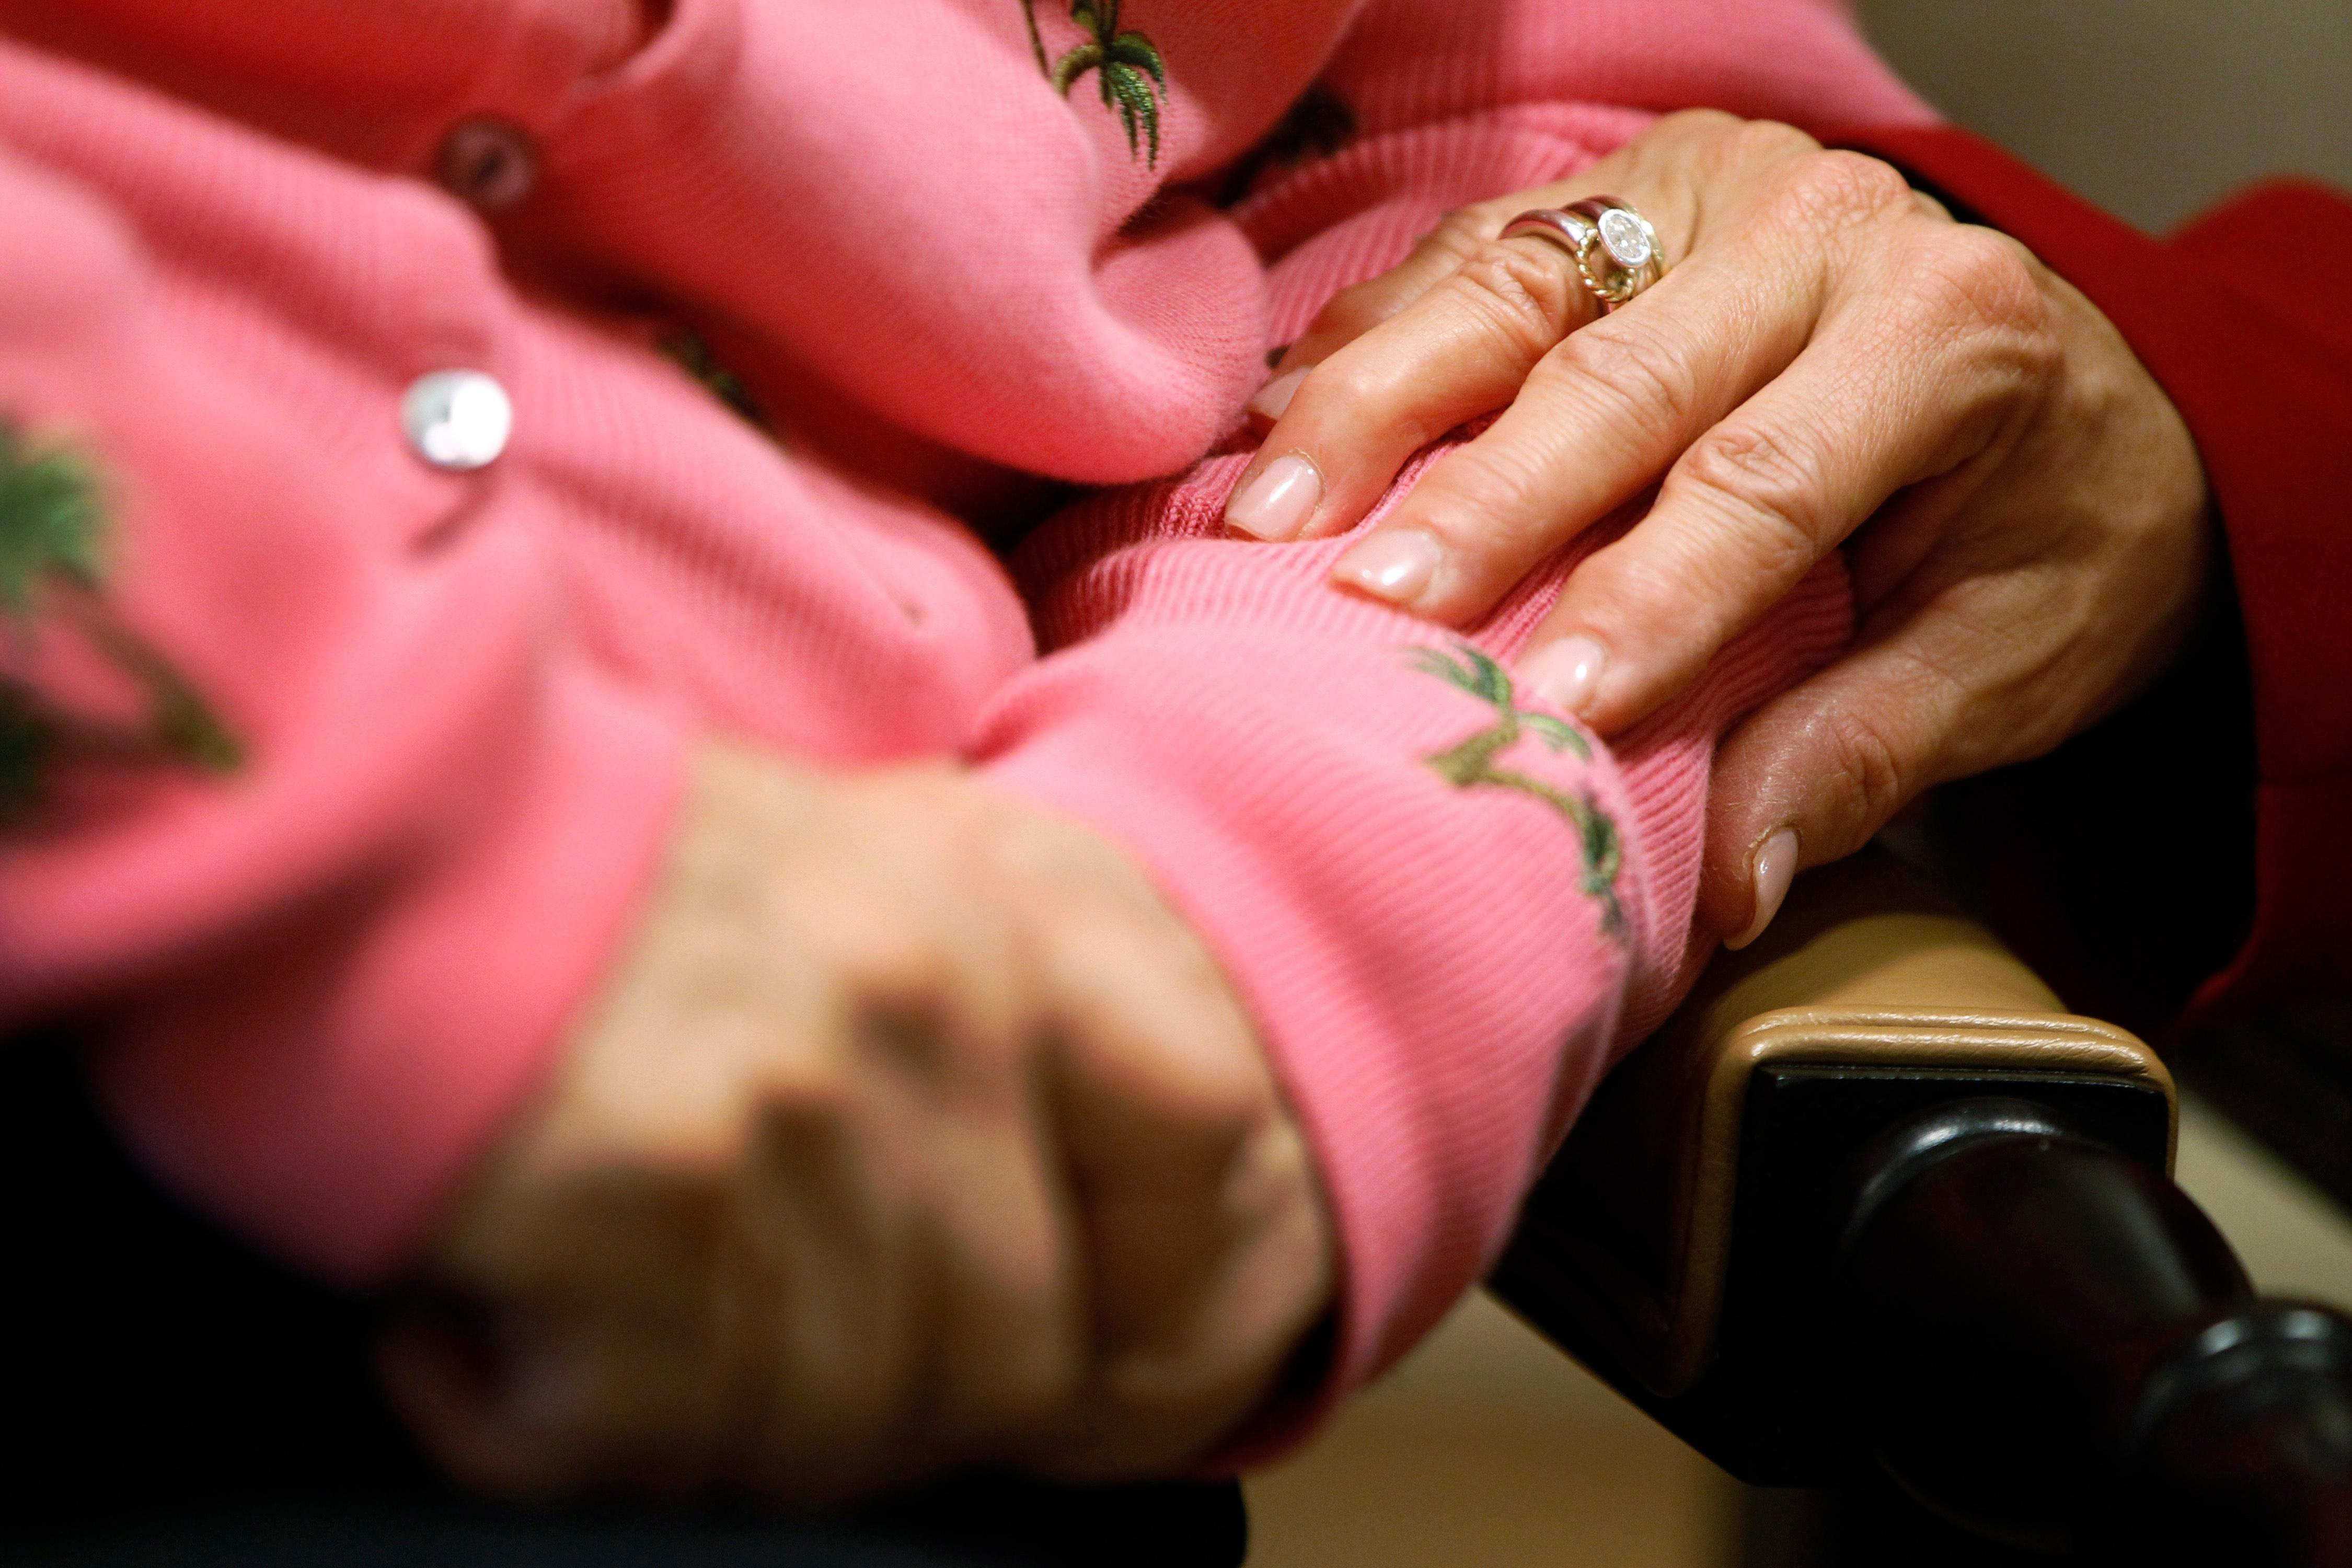 'clear Promise': Diabetes Drug Reversed Memory Loss In Mice With Alzheimer's, Researchers Find